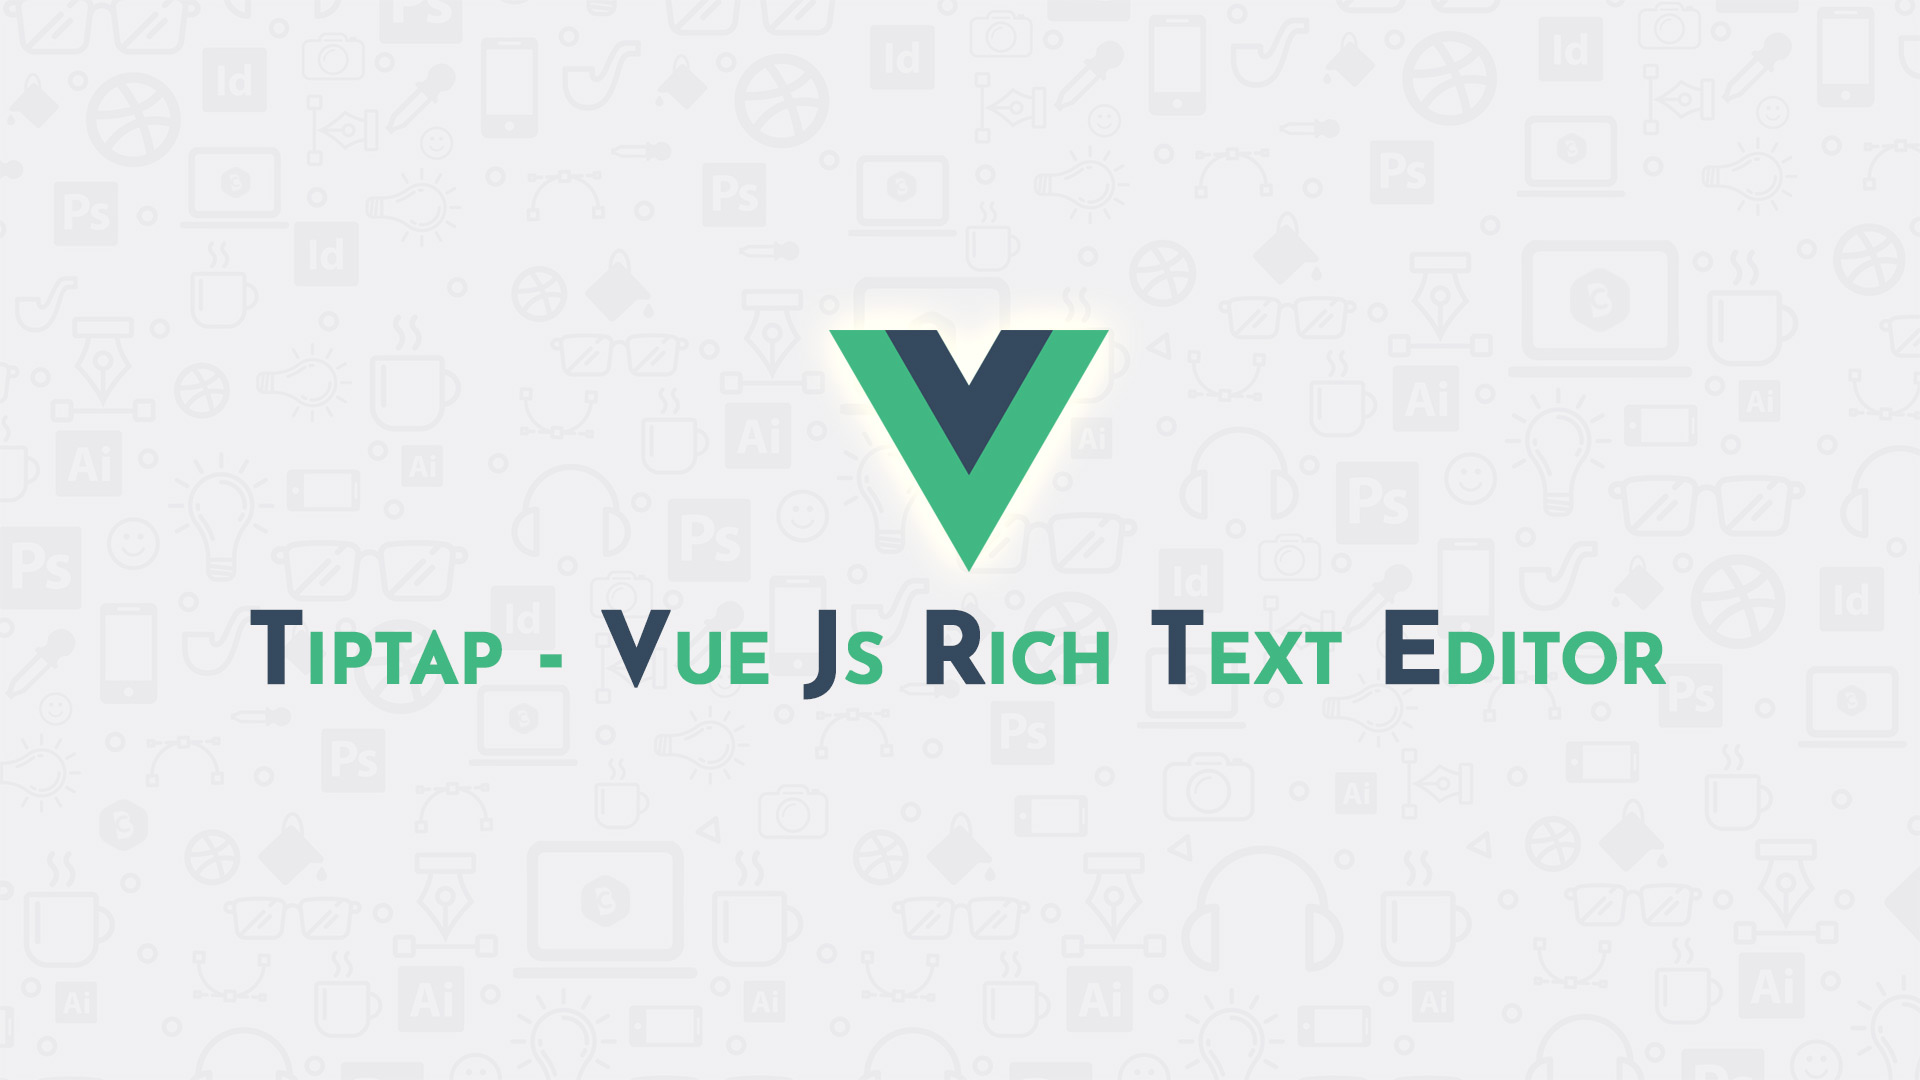 Tiptap - Vue Js Rich Text Editor - Code Briefly